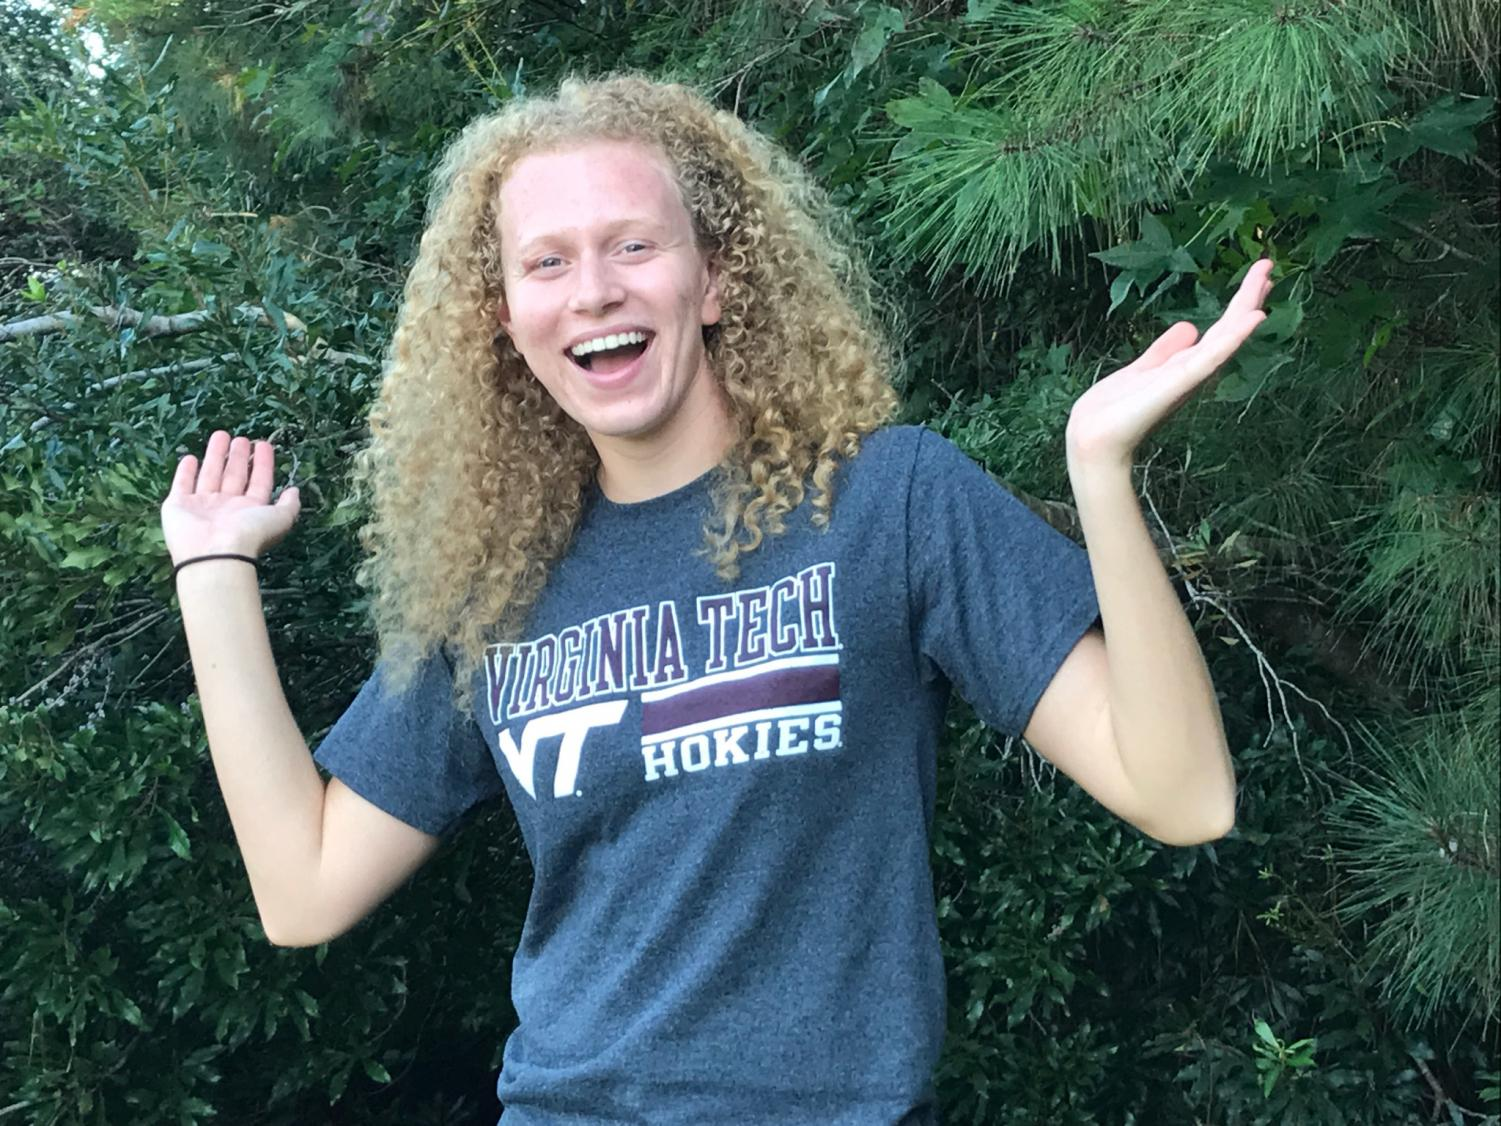 Senior Julia Smith takes picture in Virginia Tech shirt after committing. Photo on Sept. 30, 2018